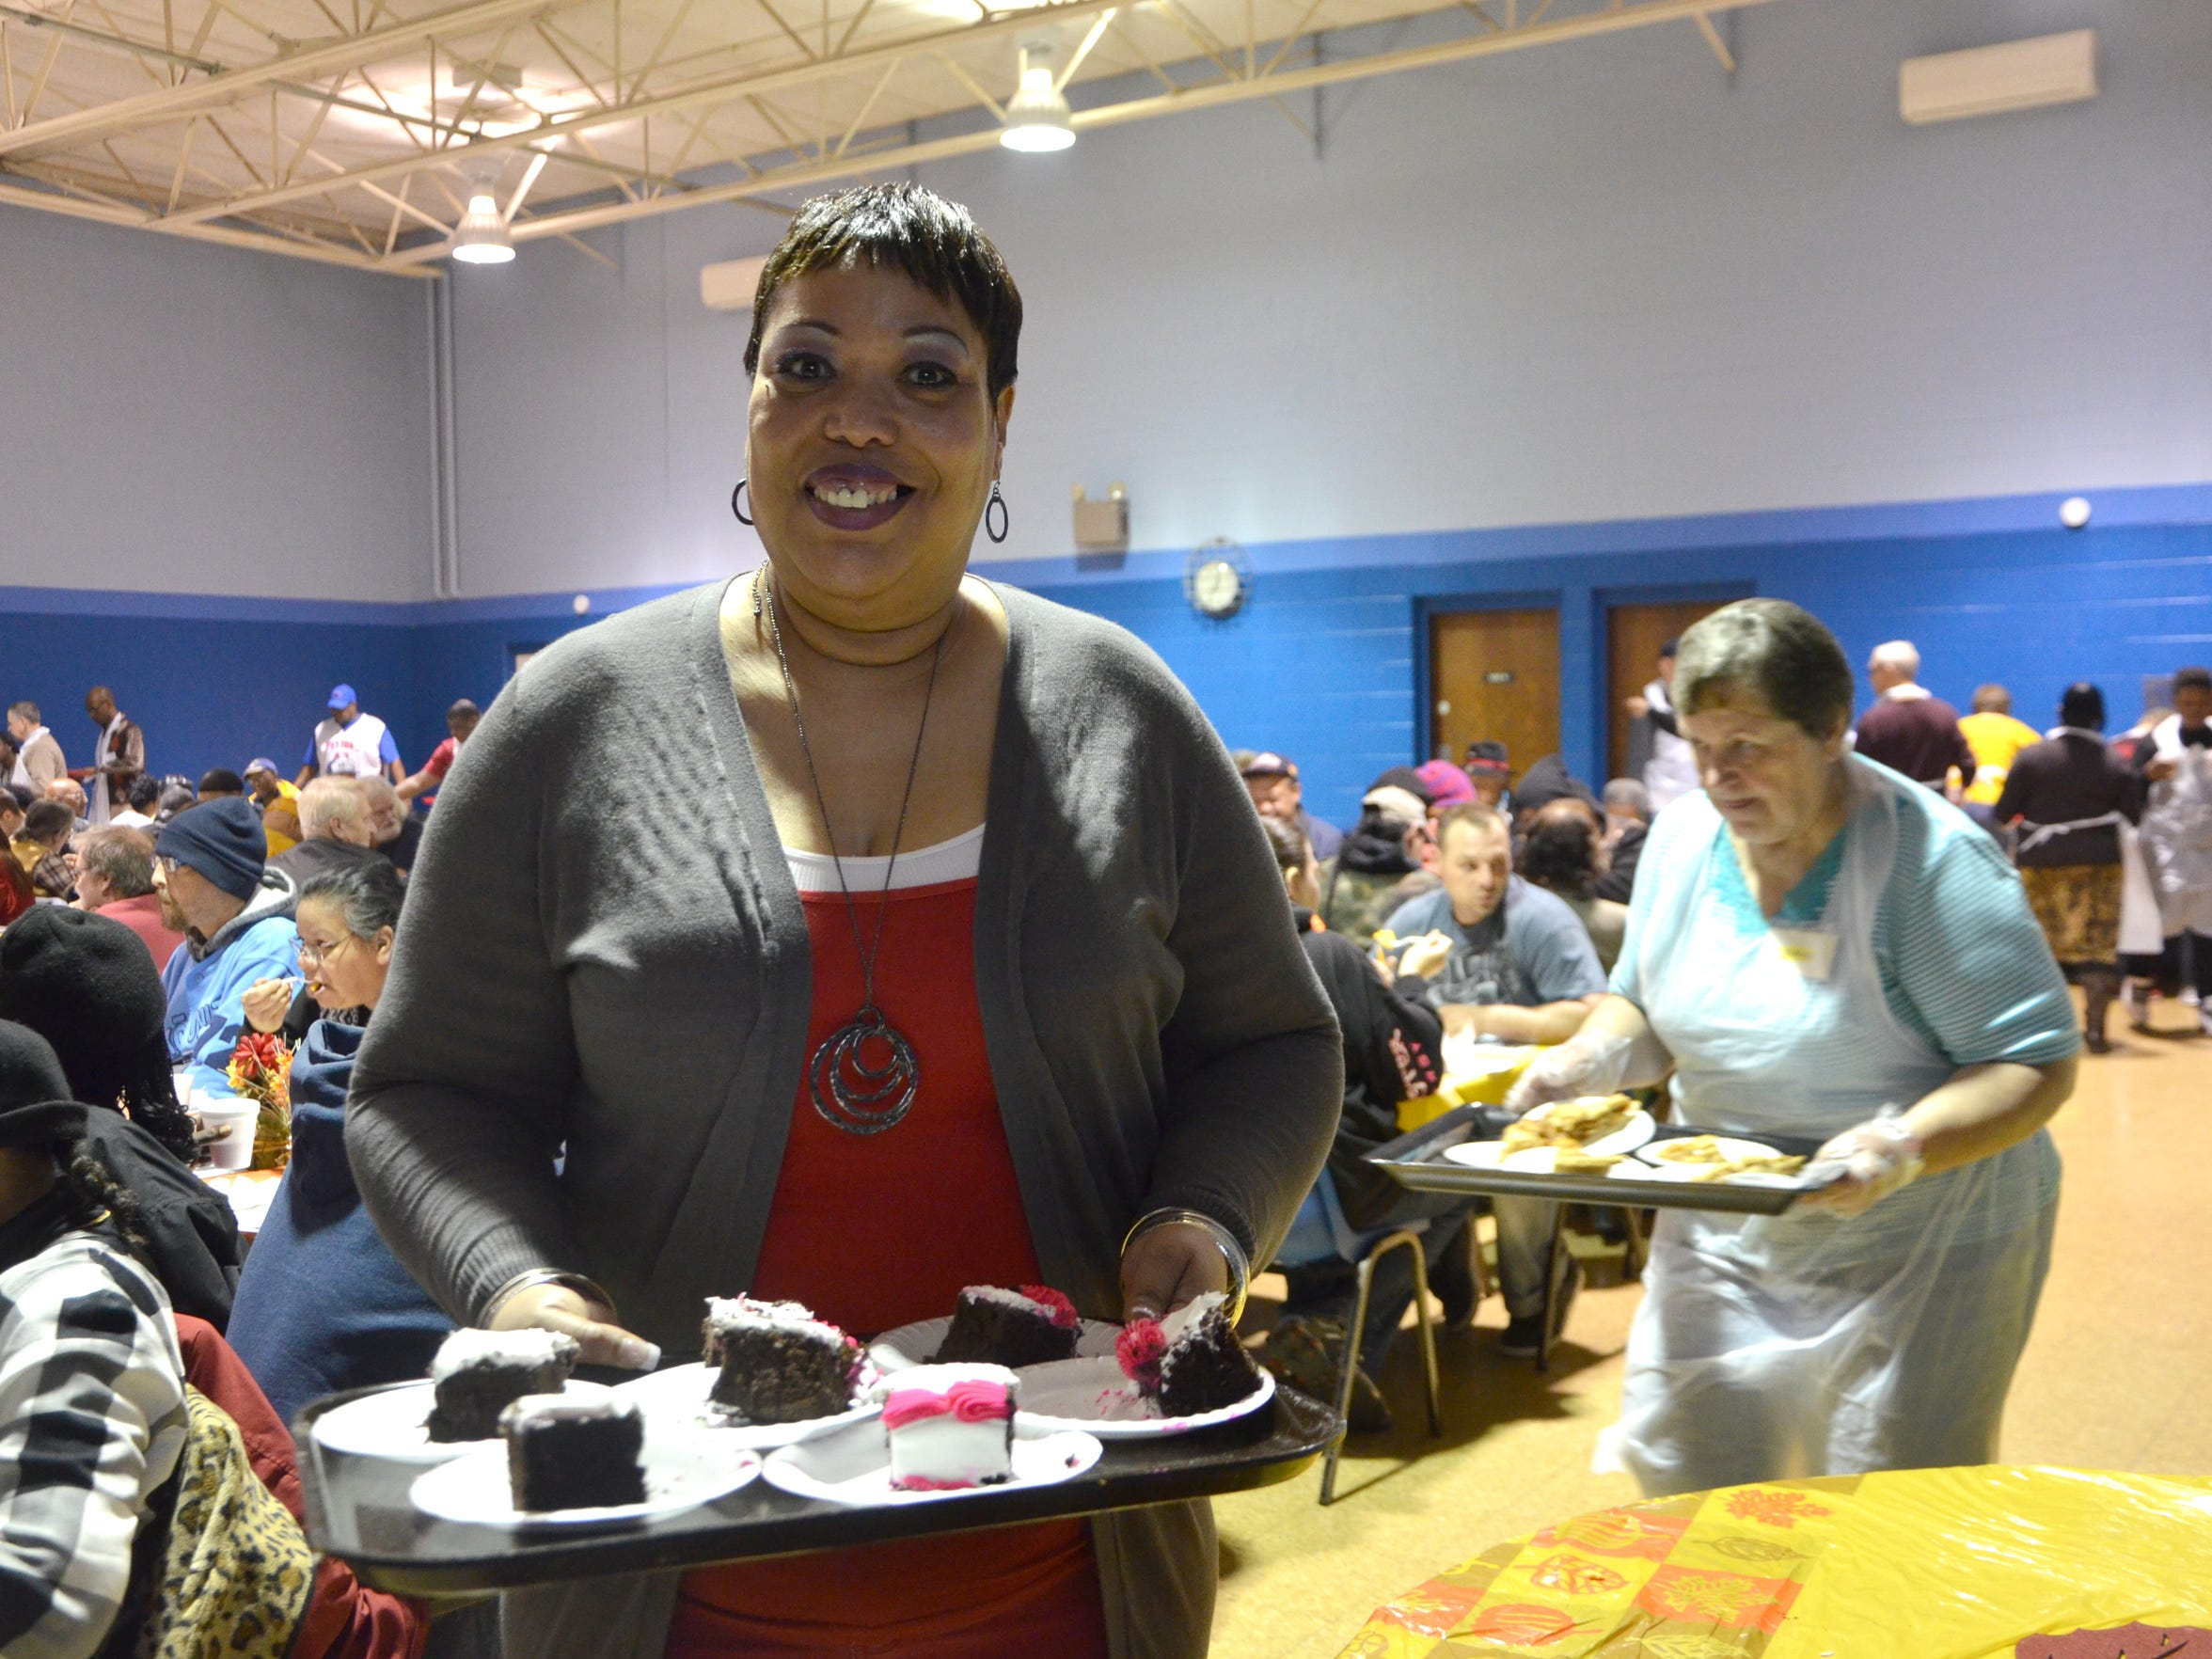 Stephanie Travis-Brown takes a tray of desserts to serve to attendees. Travis-Brown is the daughter of Lorraine Hunter, a long-time organizer of the annual Thanksgiving event.